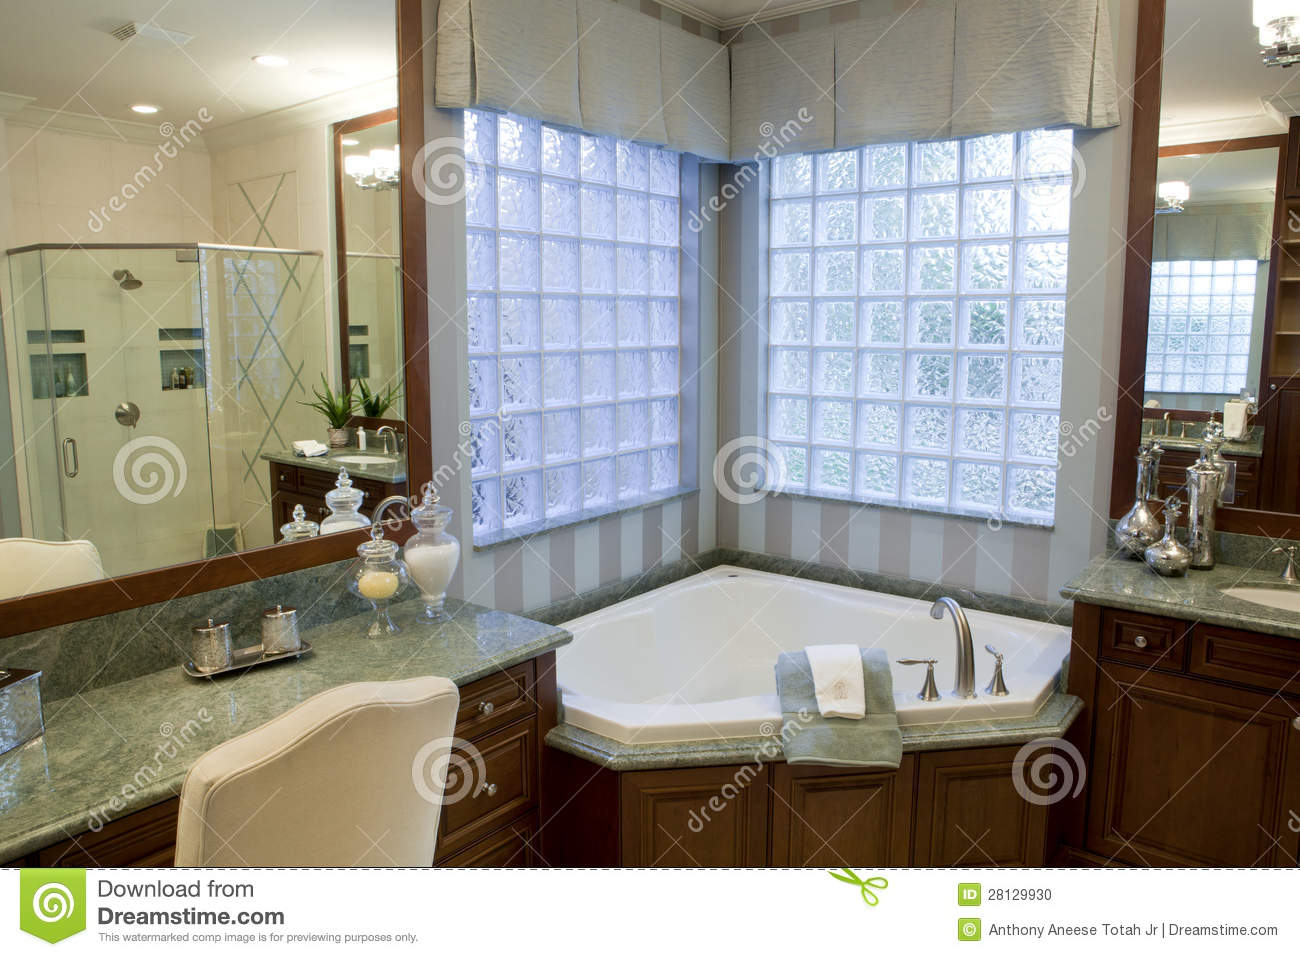 Large Upscale Master Bathroom Stock Photo - Image: 28129930